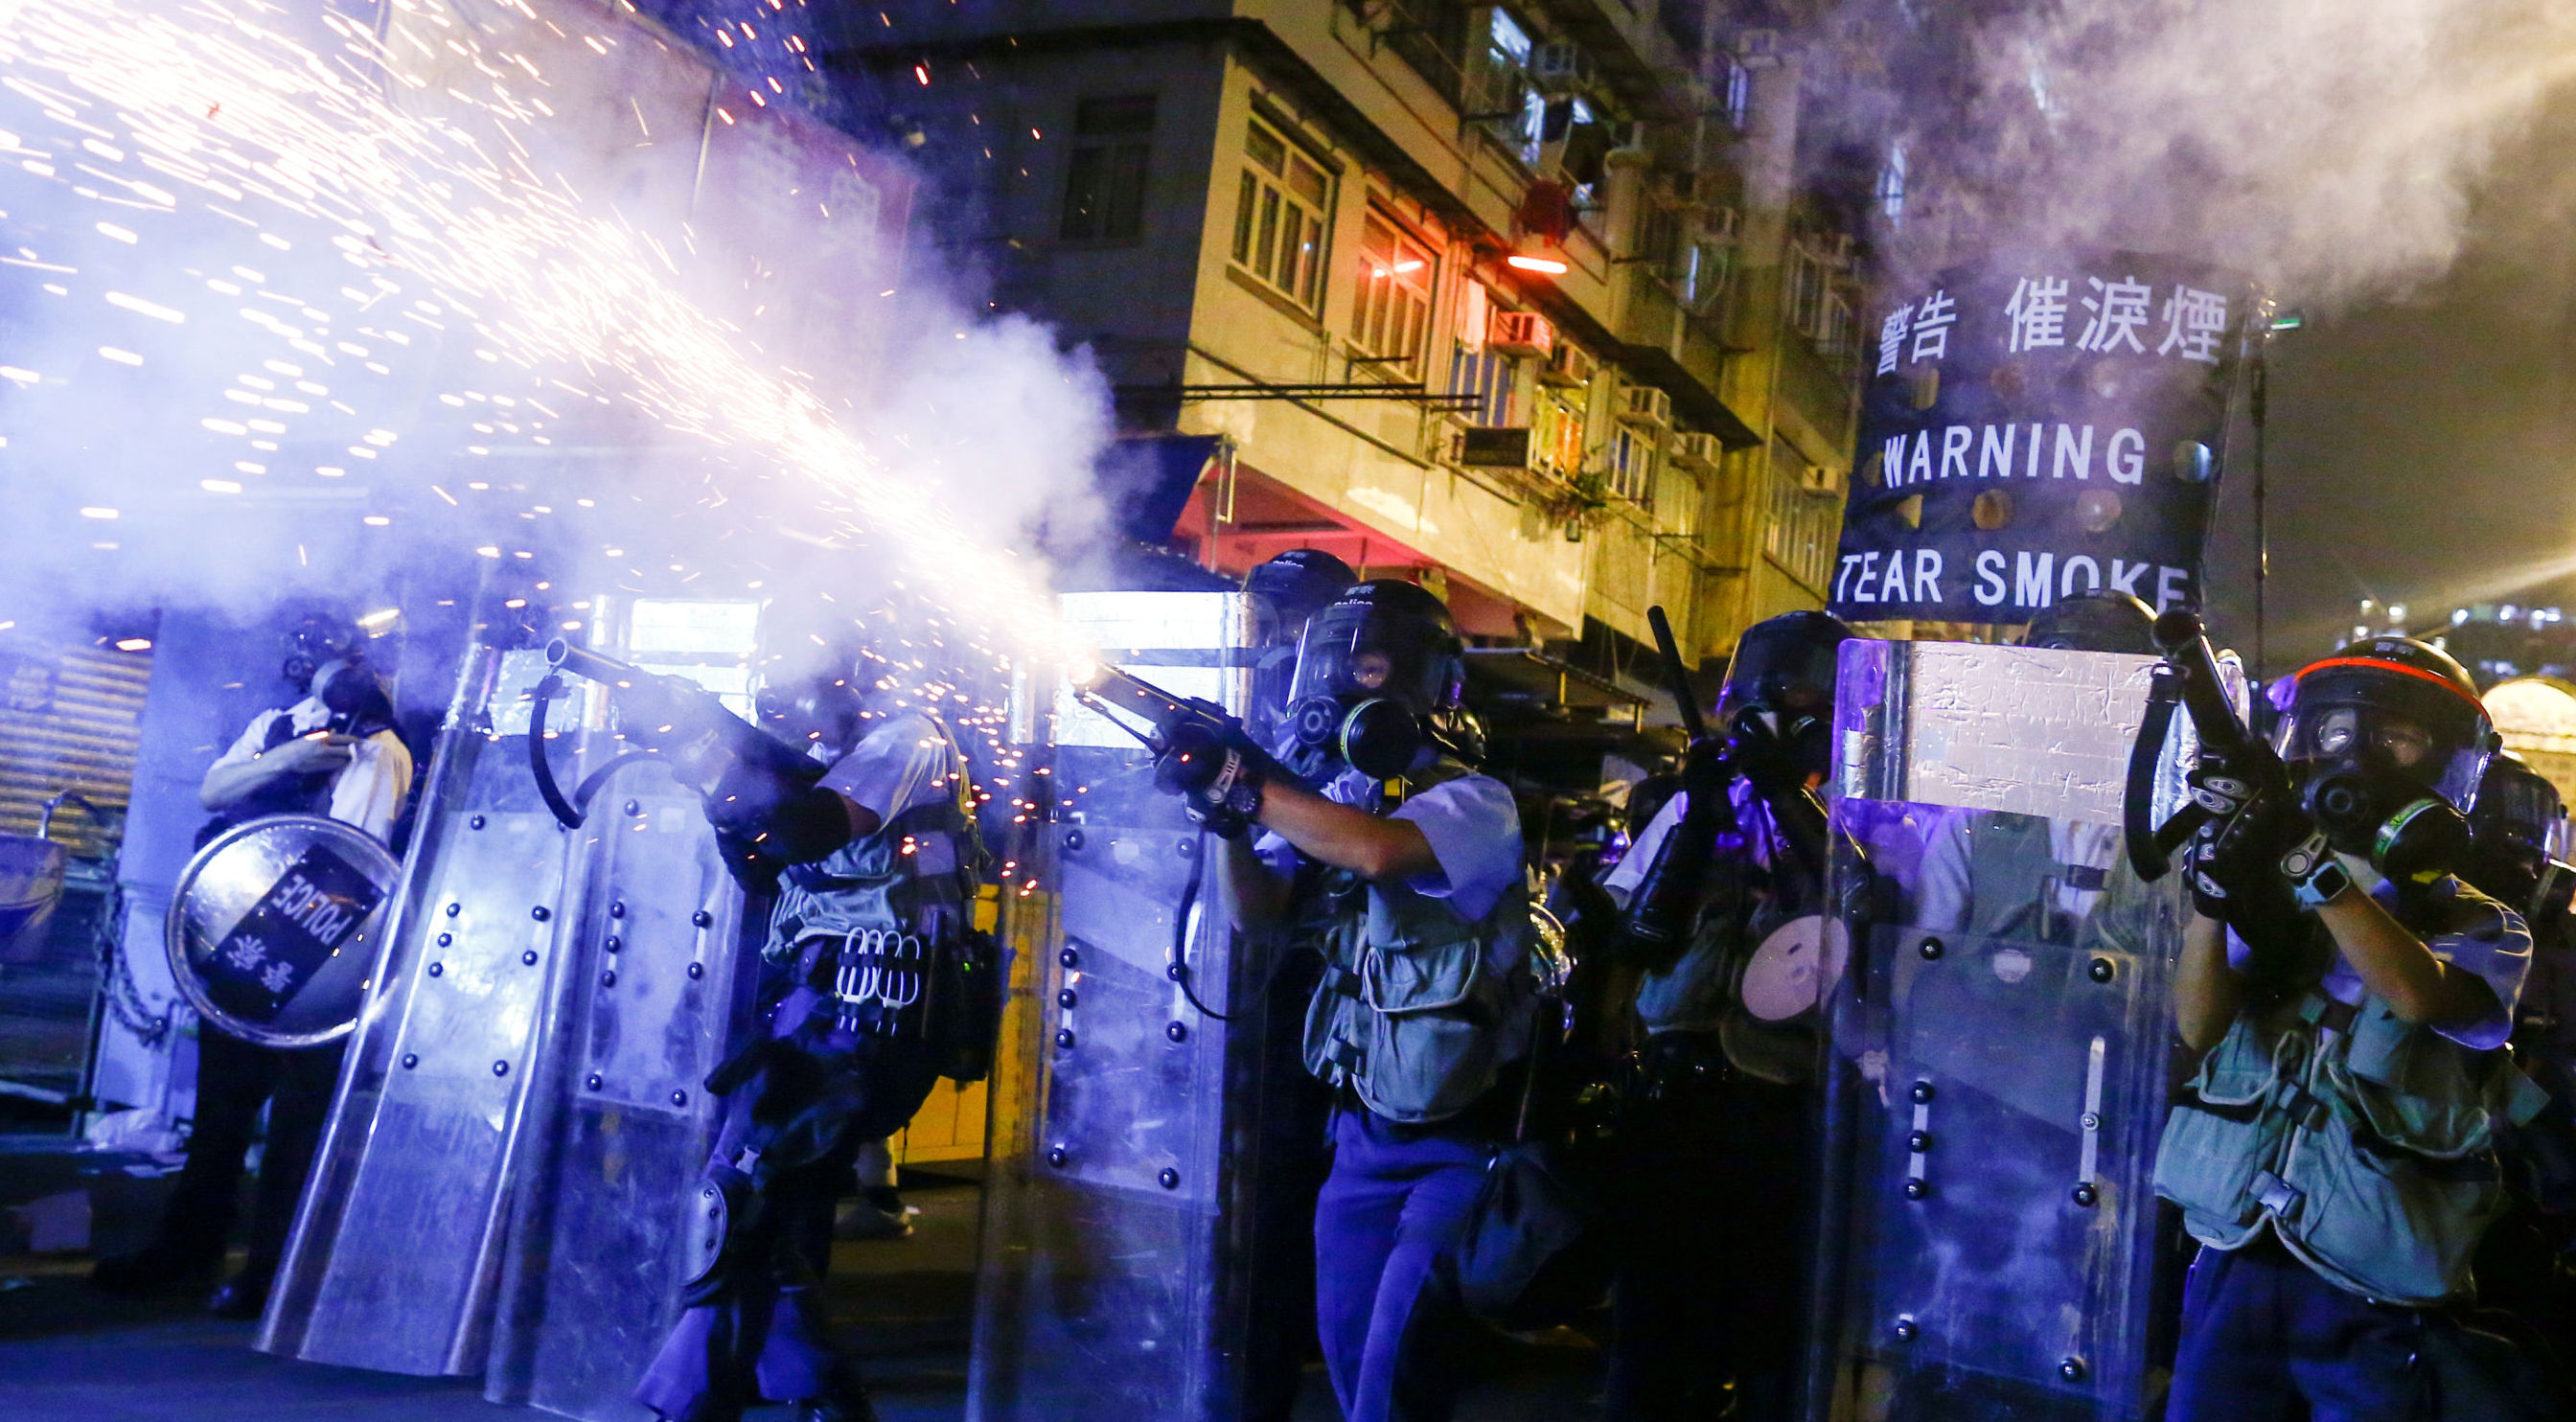 Police fire tear gas at anti-extradition bill protesters during clashes in Sham Shui Po in Hong Kong, China, August 14, 2019